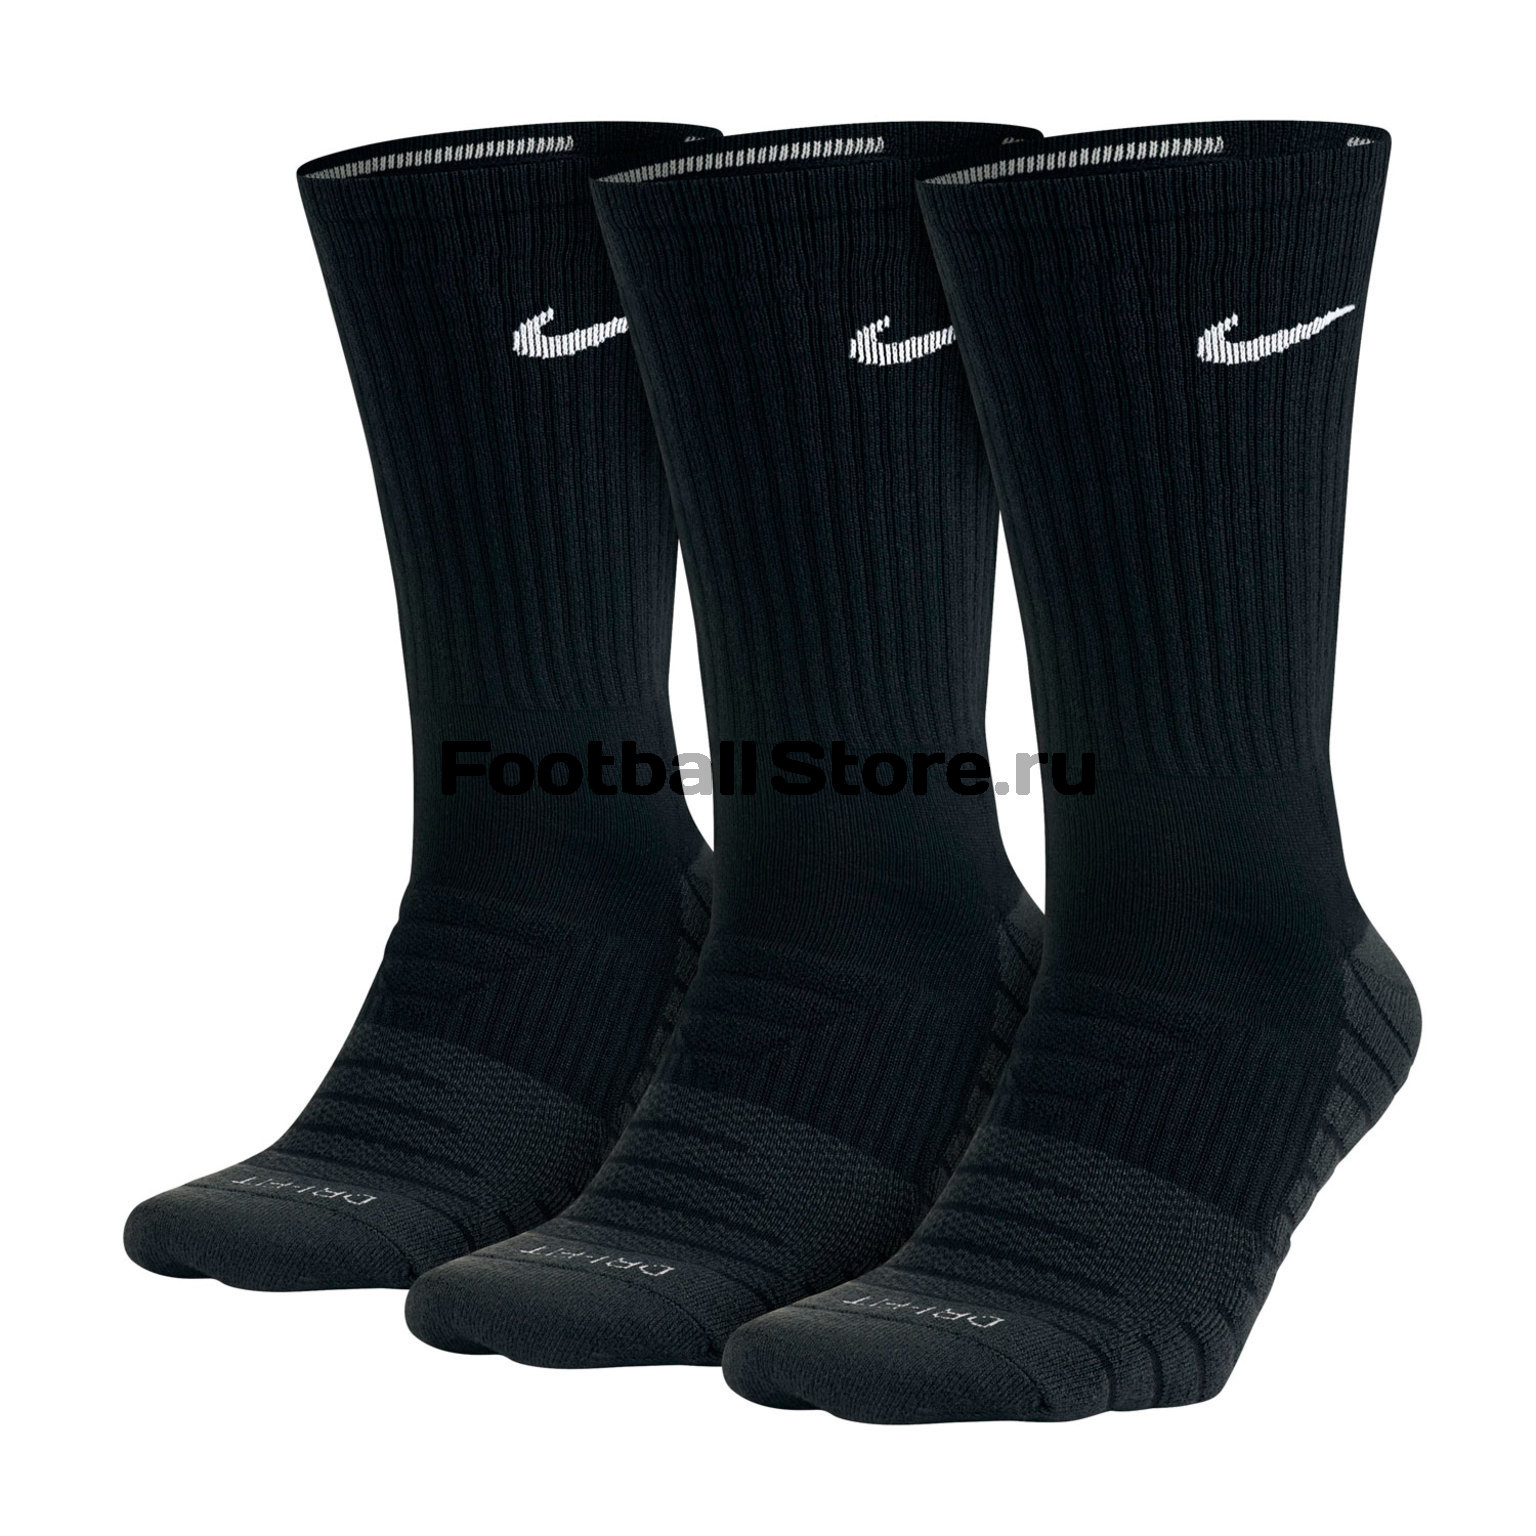 Комплект носков Nike 3PPK Dri-Fit Cushion Crew SX5547-010 комплект носков nike 3ppk cushion quarter sx4703 901